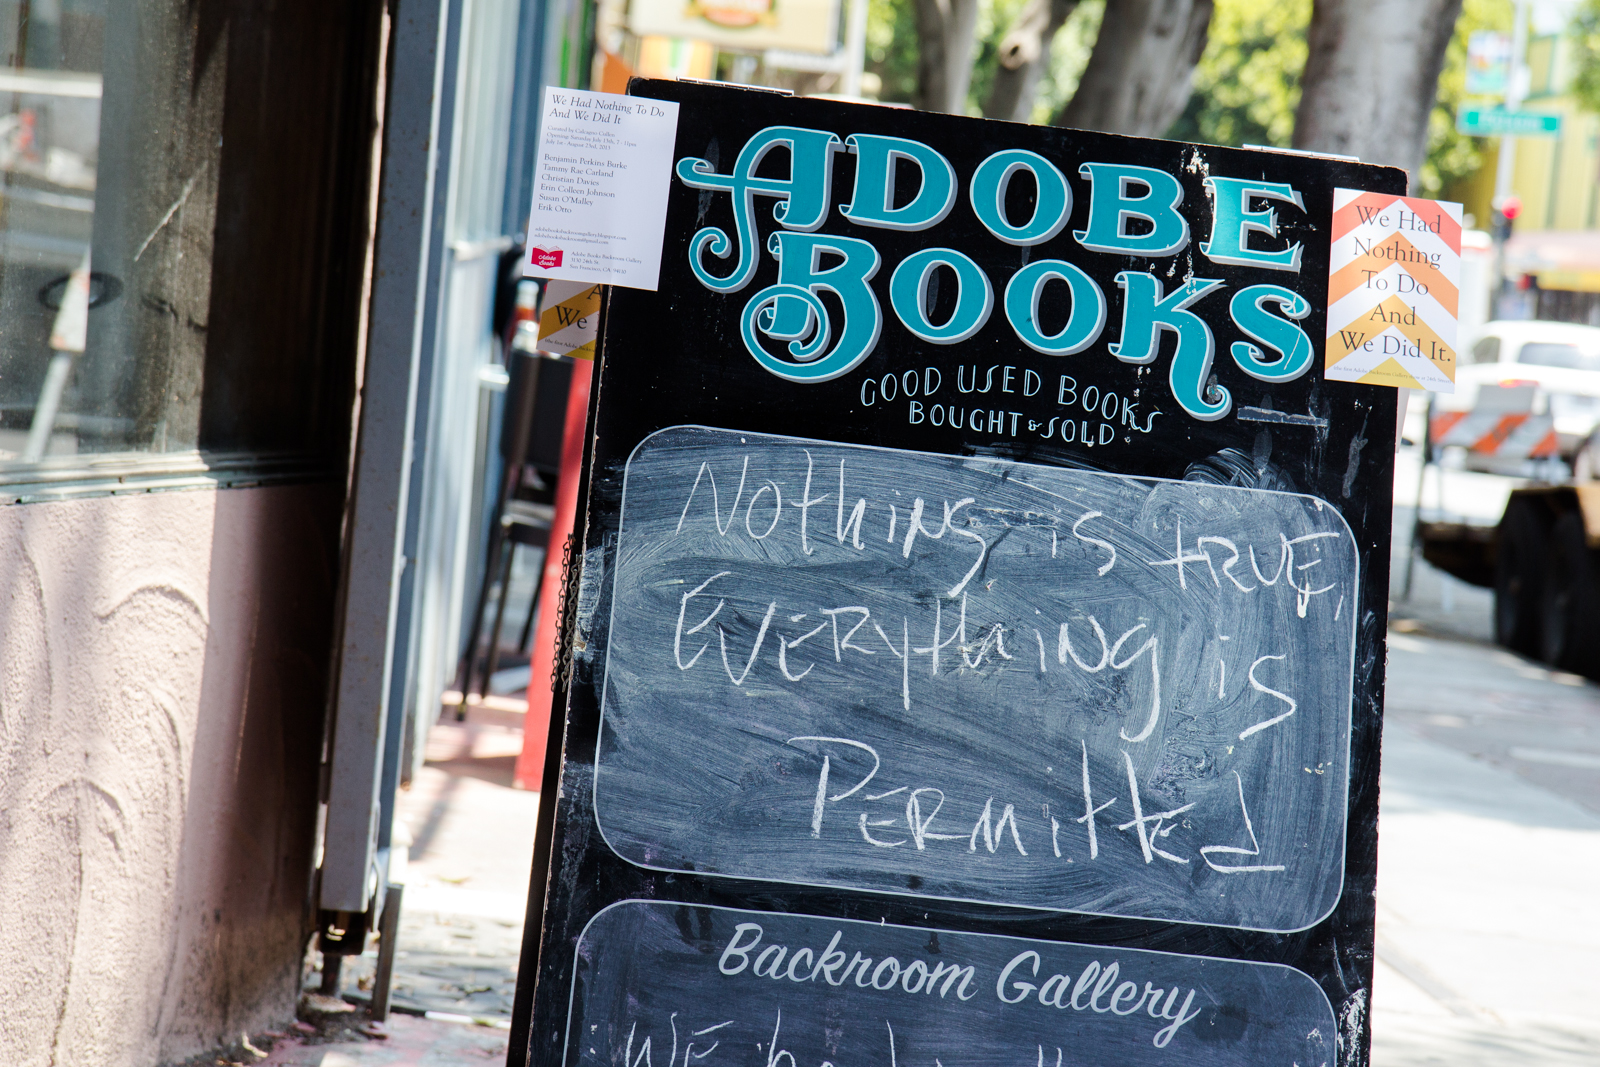 Adobe Books granted legacy business status — despite tricky personnel dispute